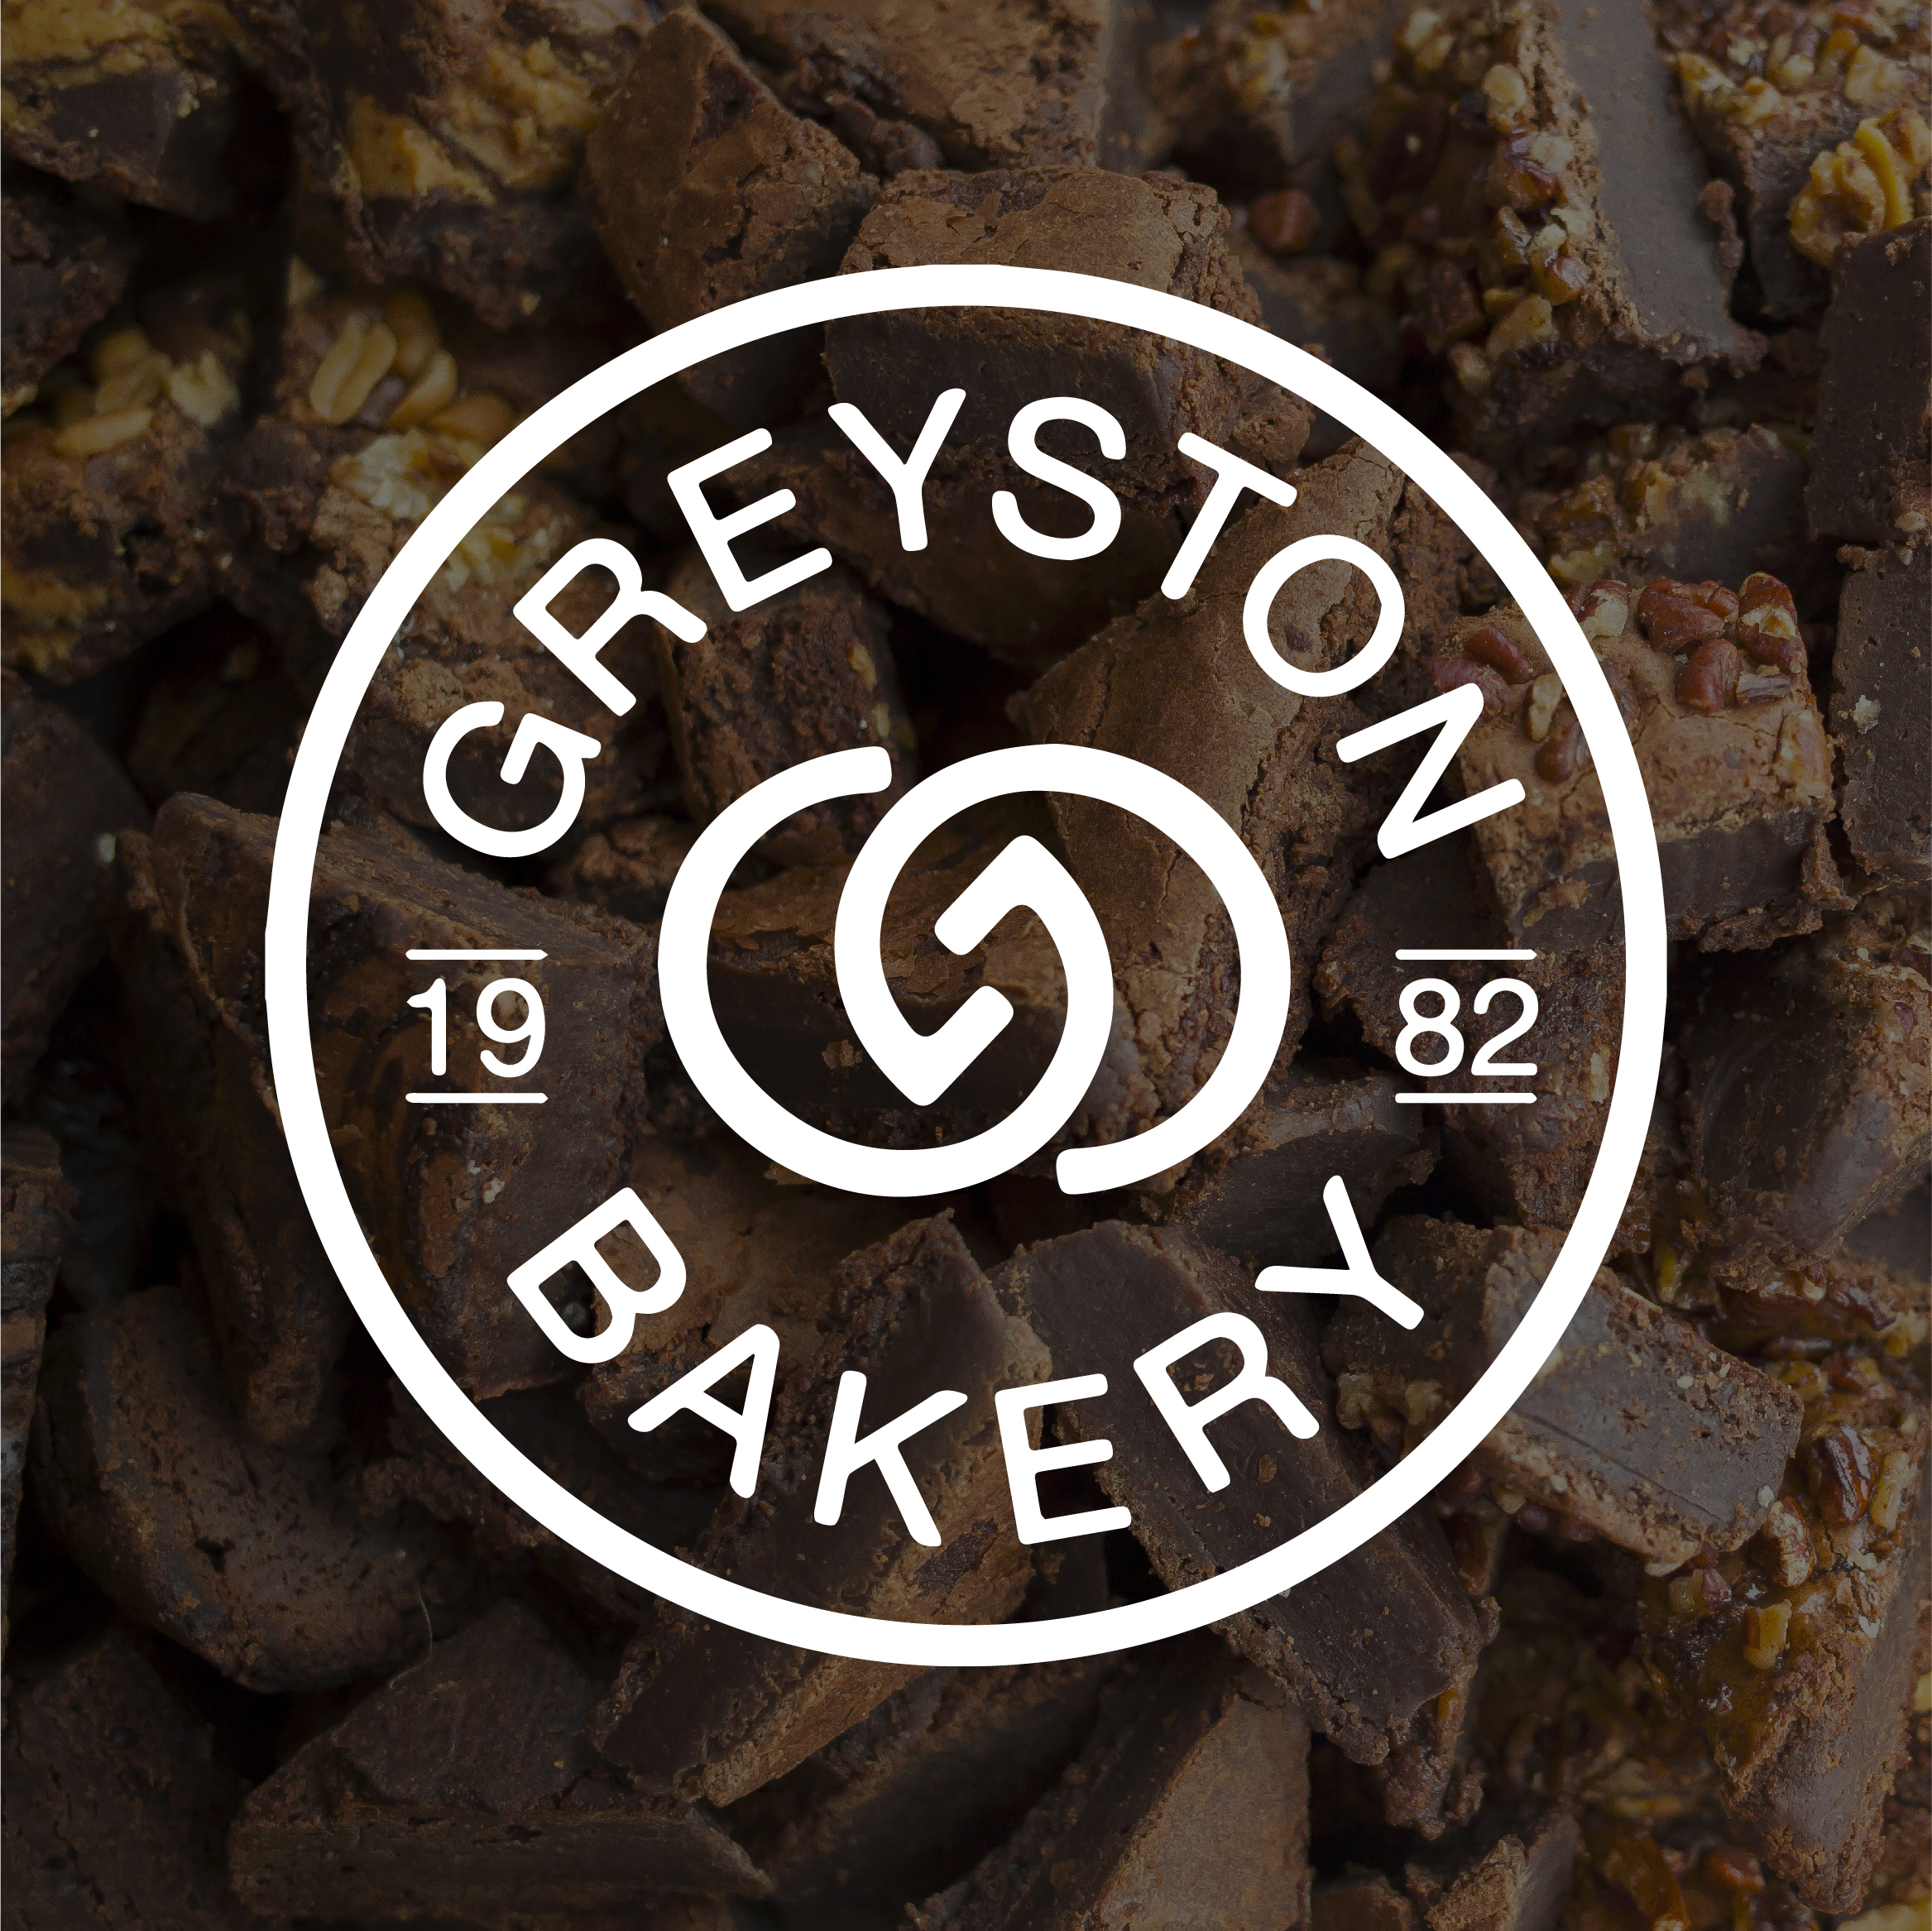 Greyston Bakery a B-Corp Case study   Business analysis and a new revenue proposal for a B Corporation.